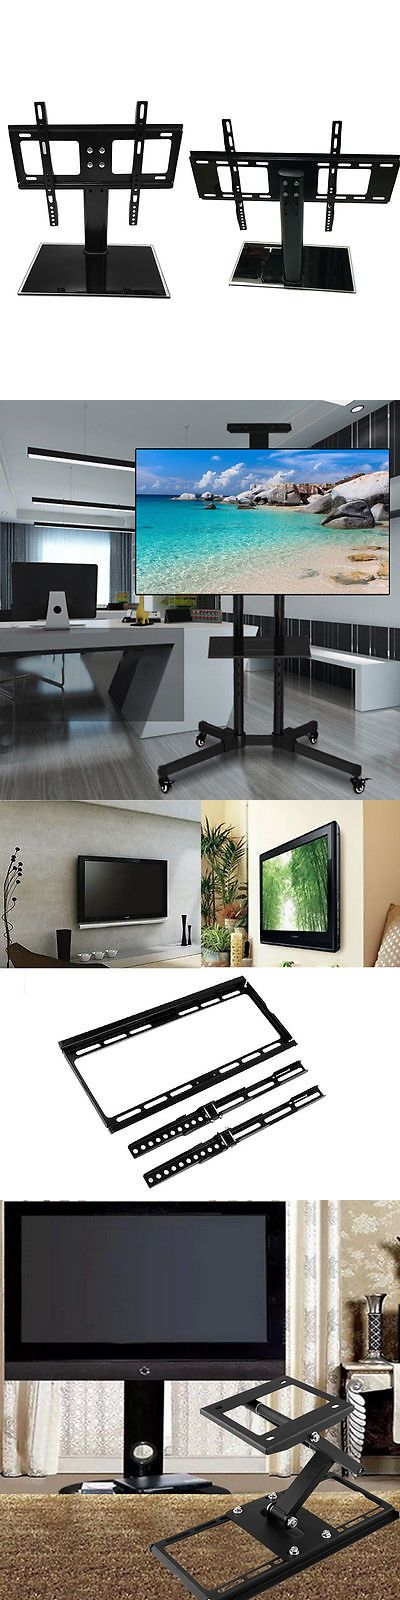 TV Mounts and Brackets: Universal Tabletop Tv Stand Pedestal Base Swivel Wall Mount For 10-65 Tvs Lot BUY IT NOW ONLY: $44.95